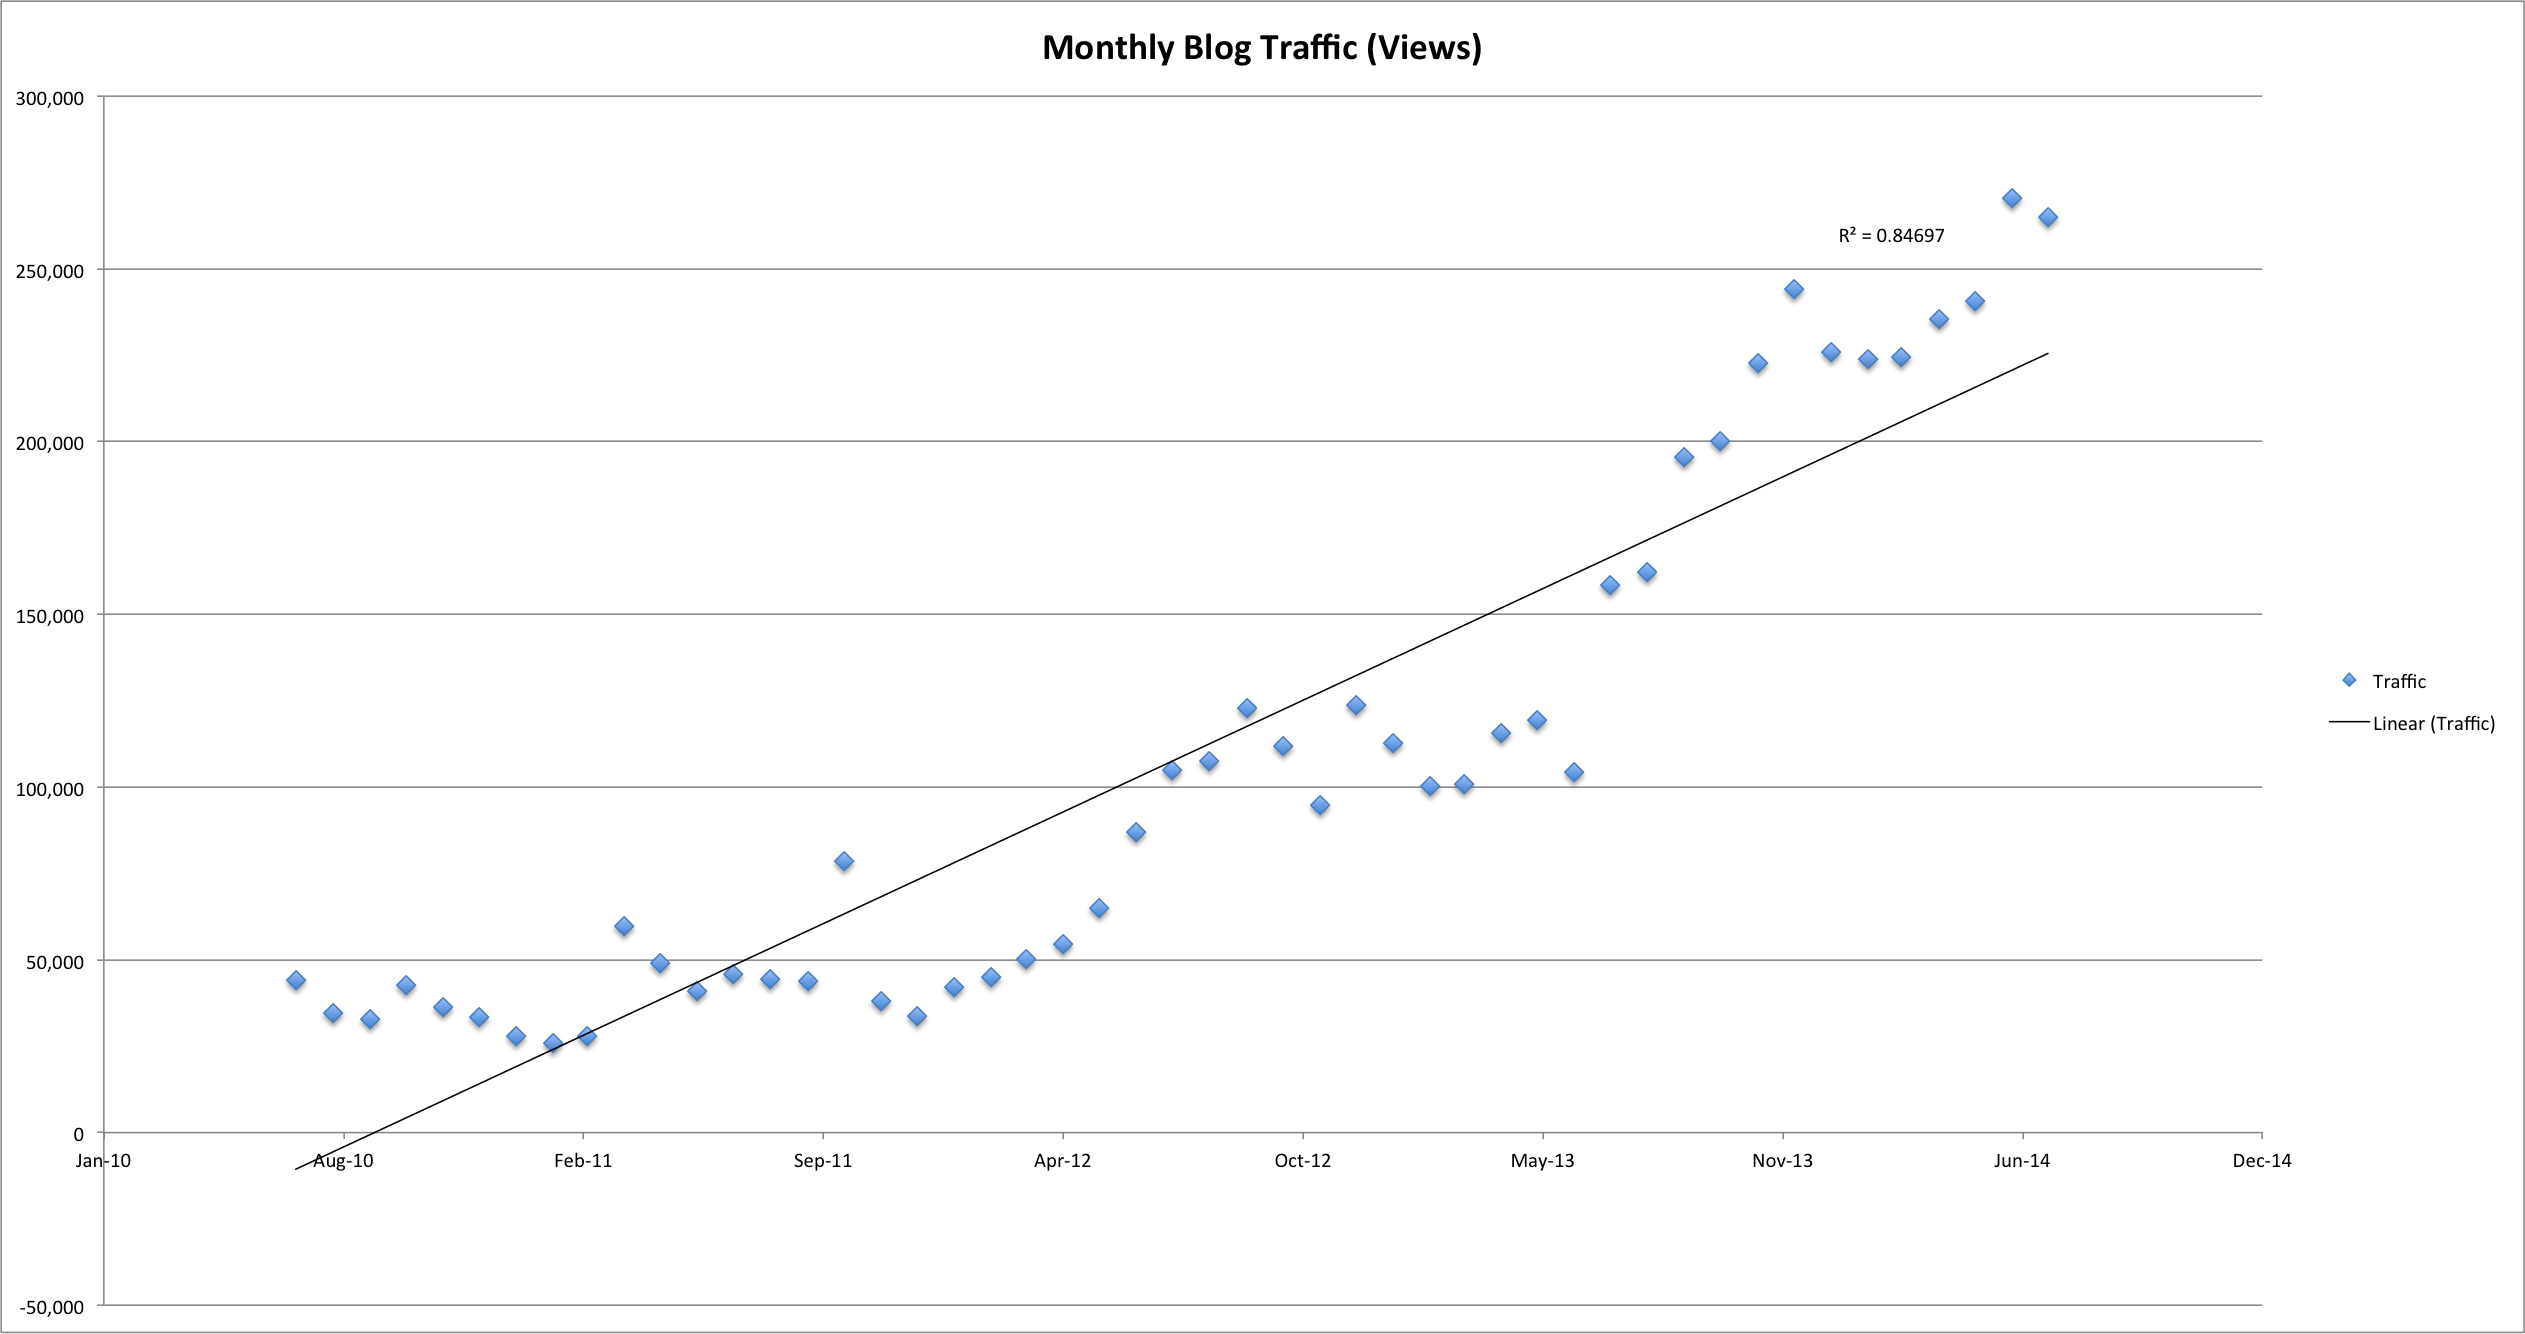 Linear regression analysis of monthly blog traffic growth